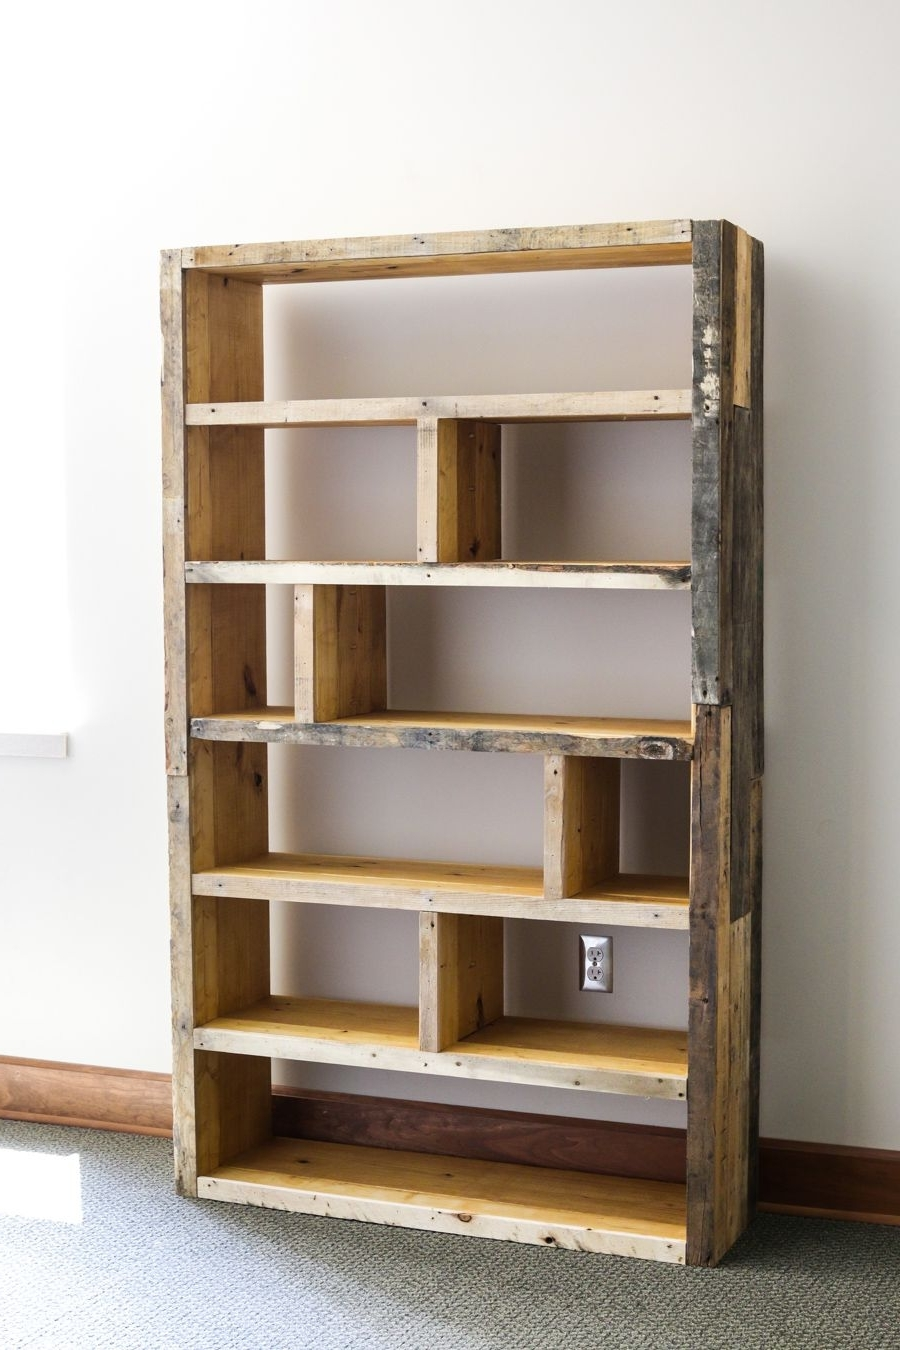 Diy Bookcases In Current Diy Rustic Pallet Bookshelf (View 4 of 15)